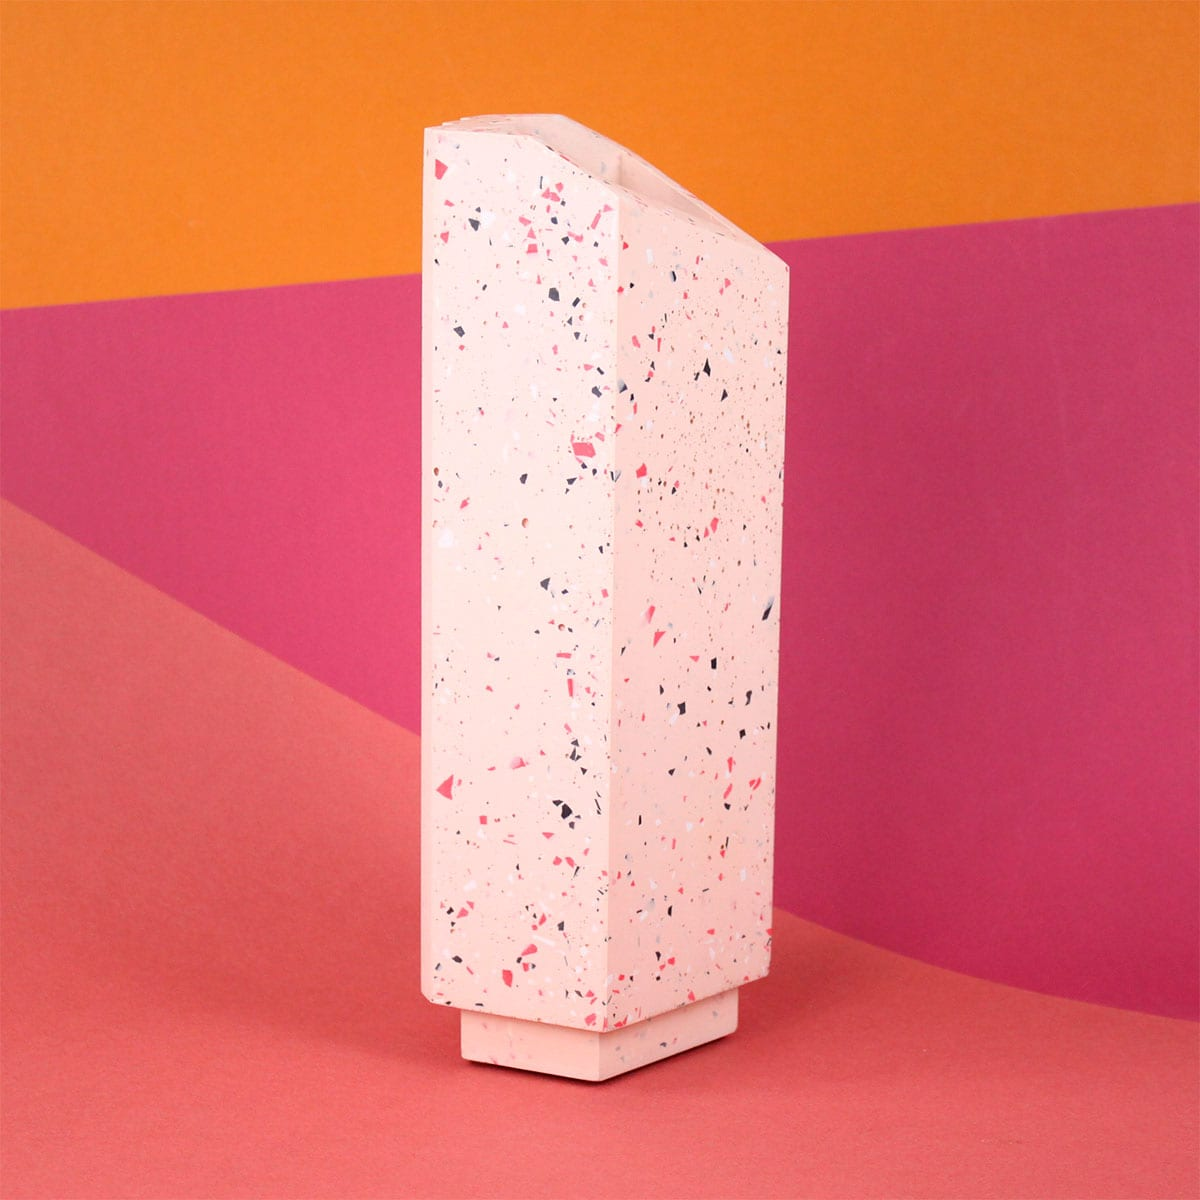 TALL FRECKLED VASE PINK FRAUKLARER